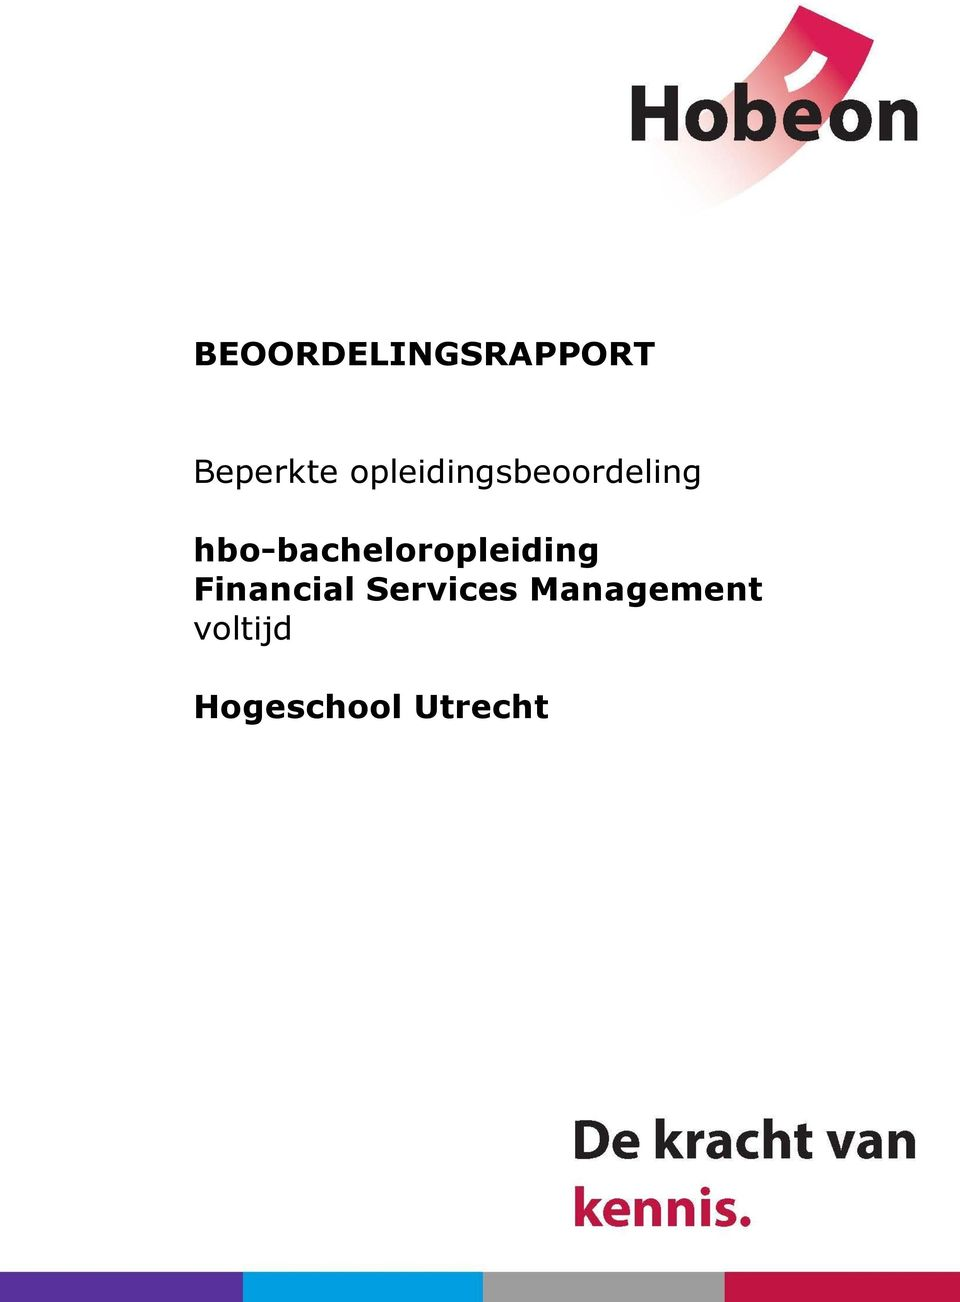 hbo-bacheloropleiding Financial